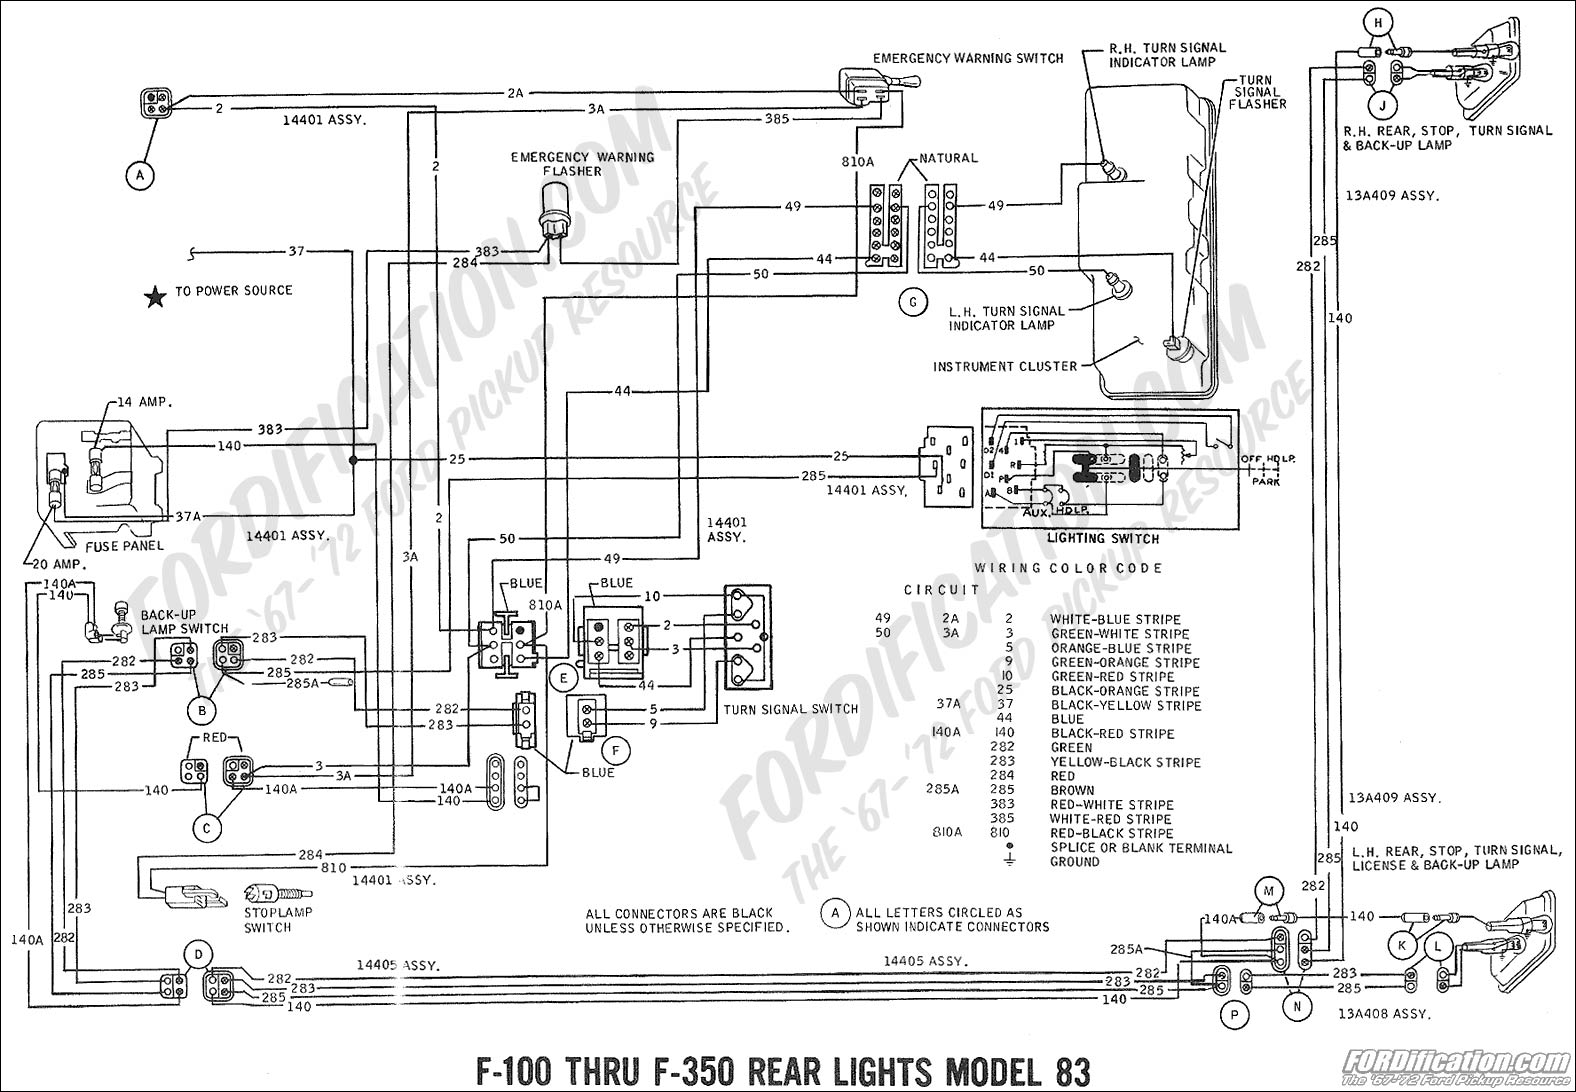 Snapper 28 Lawn Mowers Wiring Diagrams together with 337396 Tao Tao 110 Cc Electrical Issues 2 moreover Forklift Manual besides Alternator Ground 3274776 in addition Starter Wiring Diagram Jd 2640. on alternator schematic